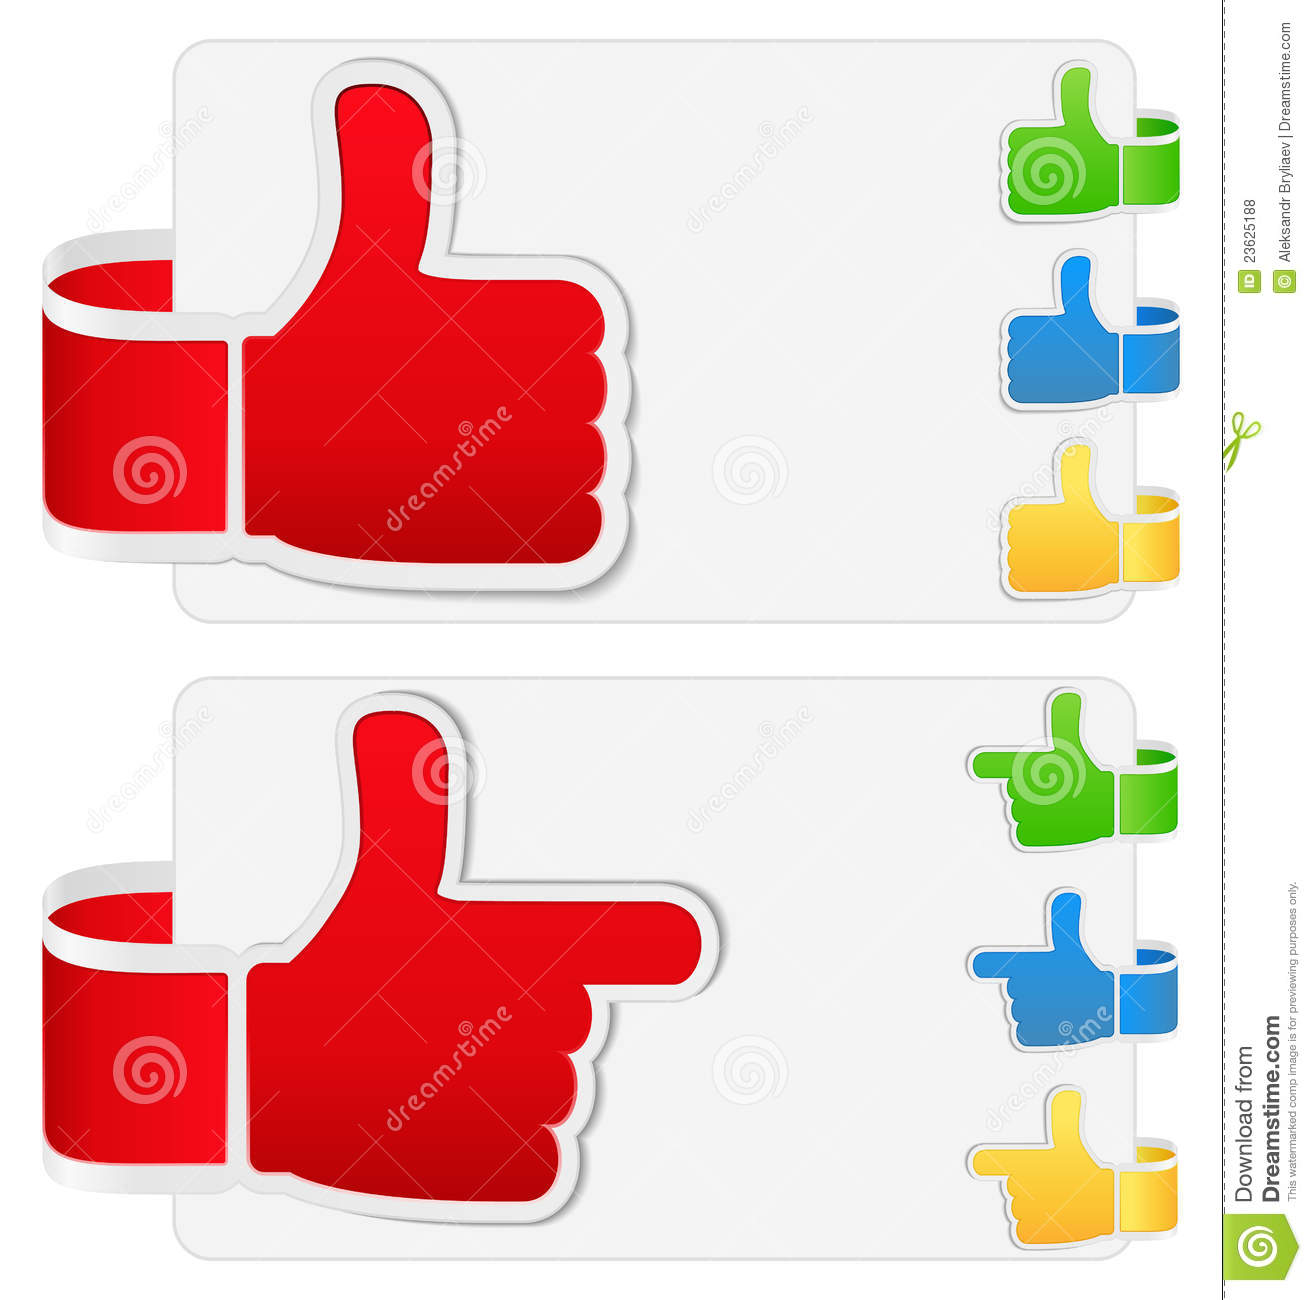 Thumb Up Symbols Royalty Free Stock Photos - Image: 23625188